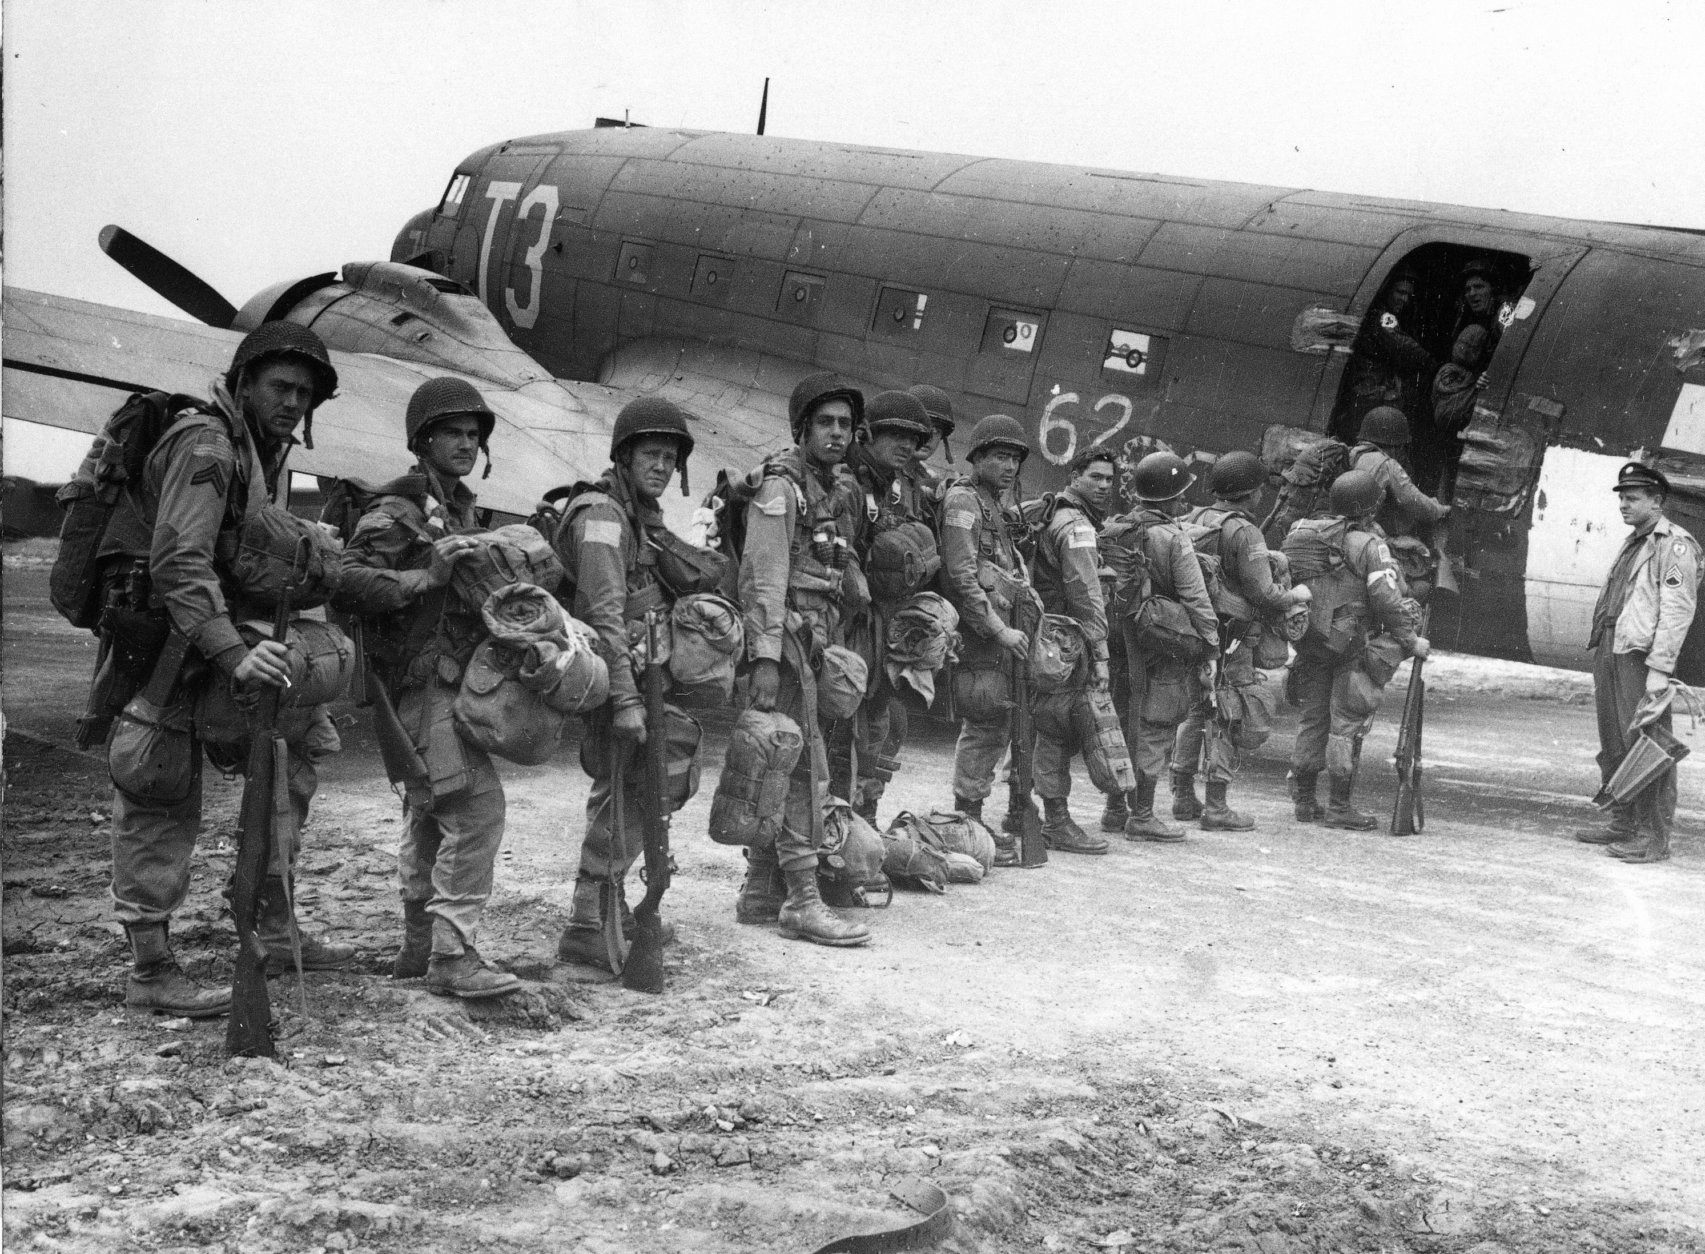 """Allied paratroopers entering one of the huge transports before taking off on the assault on German occupied Holland during """"Operation Market Garden""""  Sept. 17, 1944. (AP Photo/British Official Photograph)"""